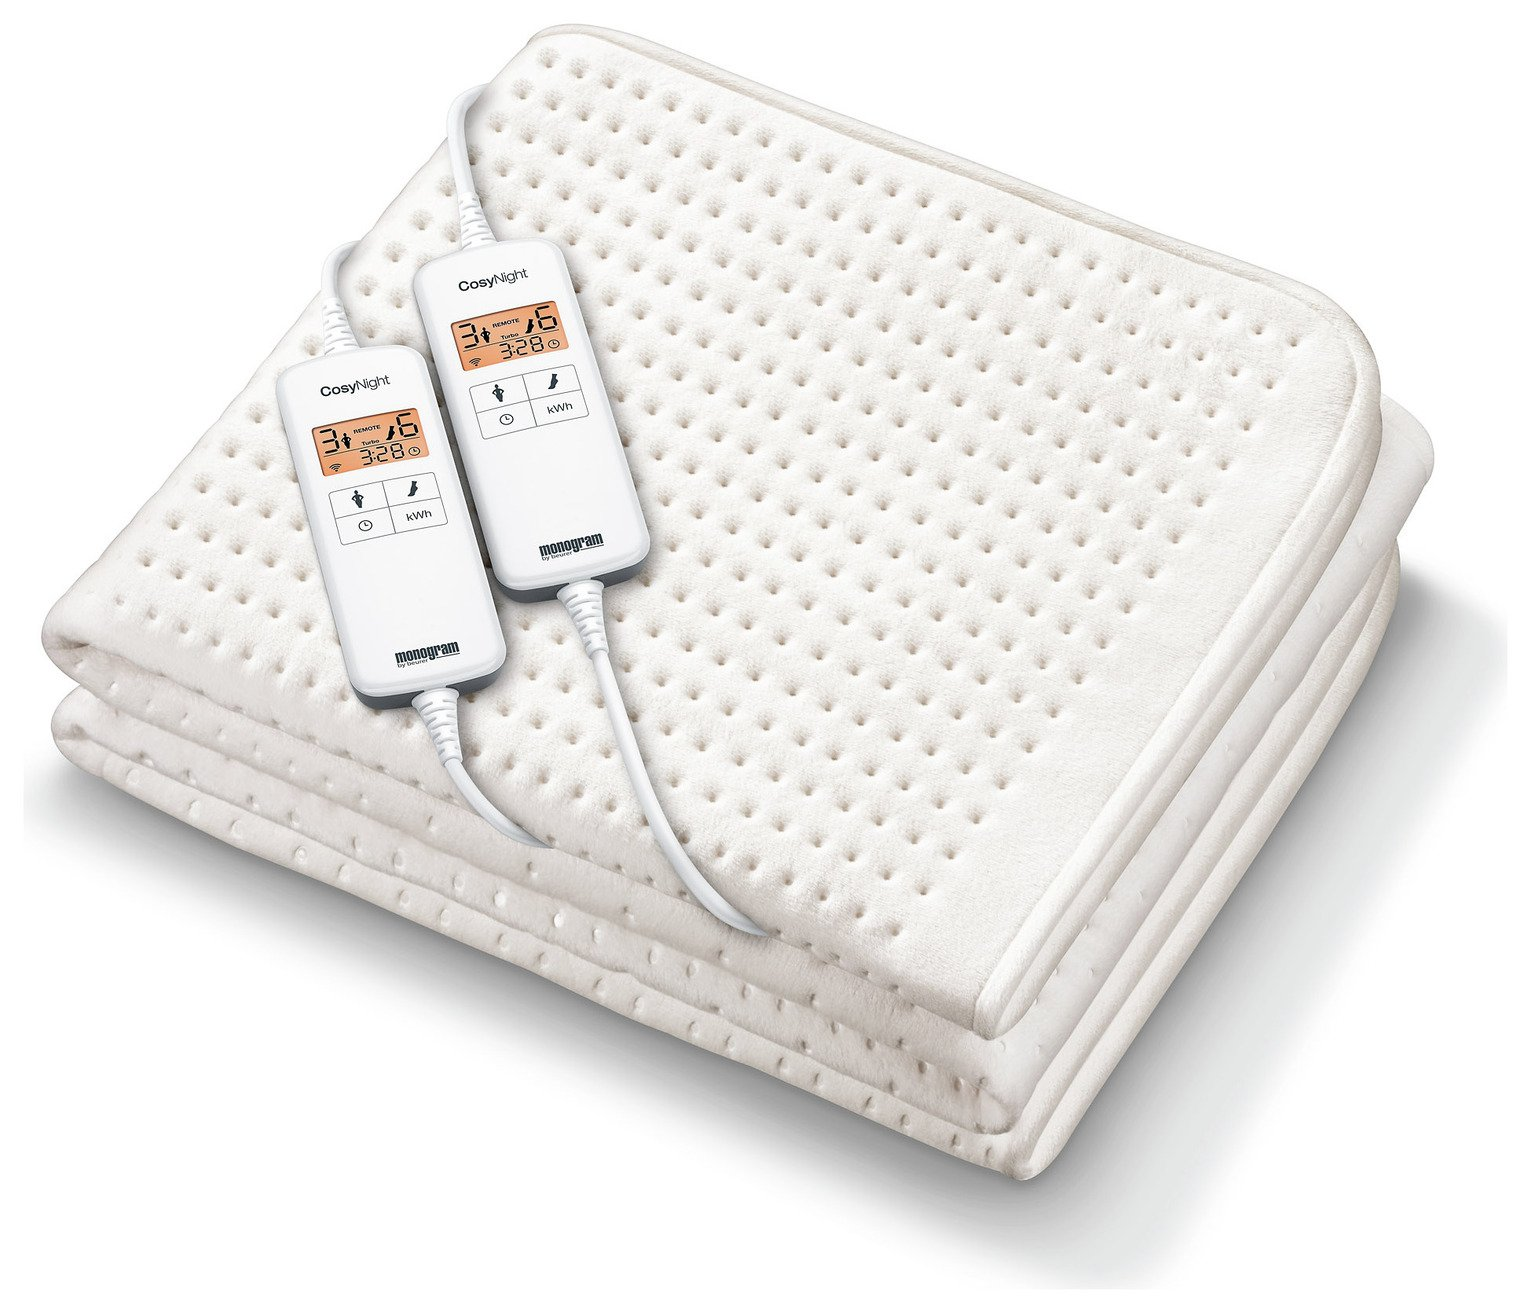 Monogram Smart Electric Blanket - Kingsize